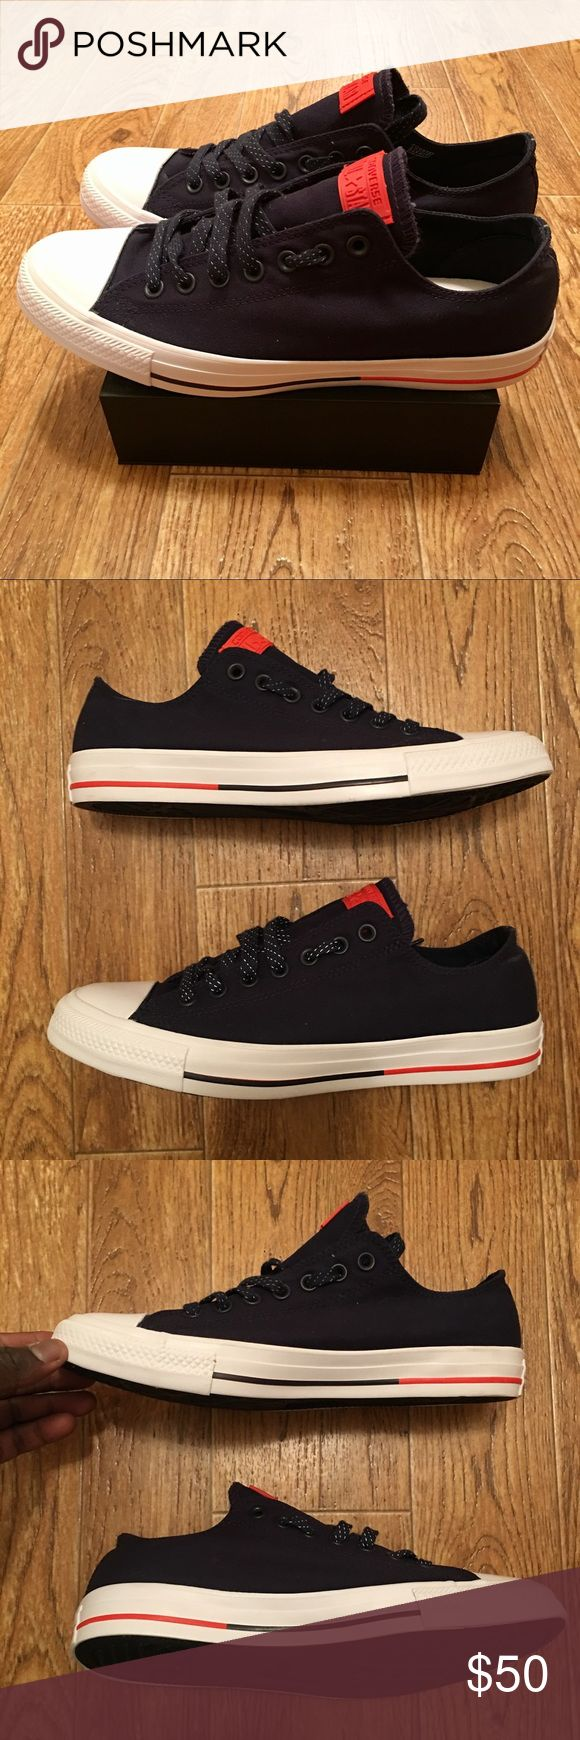 [Converse] Brand New Chuck Taylor All Star Navy Brand new Chuck Taylor All Star sneakers Navy Blue/White/Red. Men's Size 9 Converse Shoes Sneakers